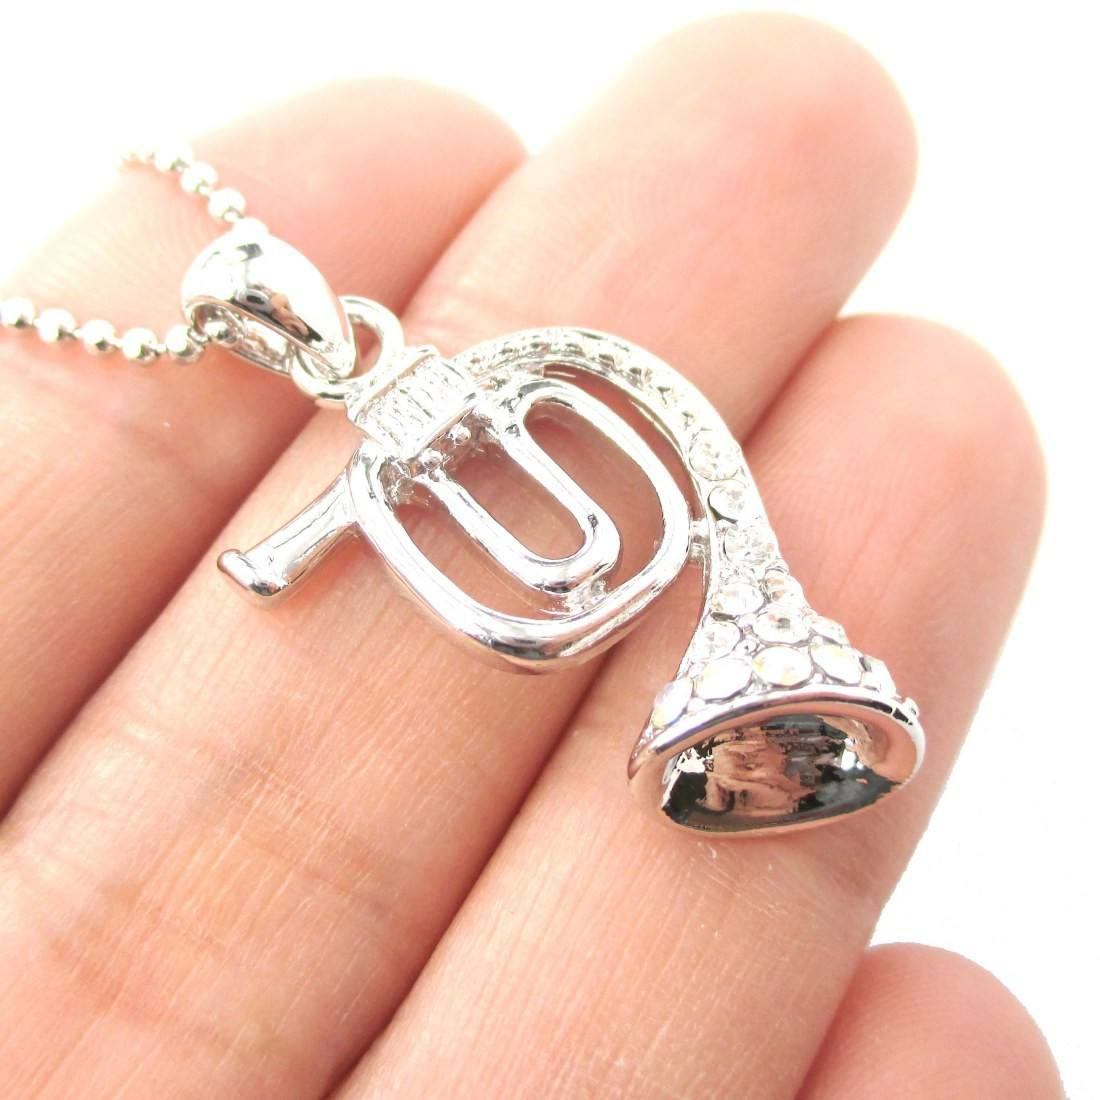 3D French Horn Shaped Music Pendant Necklace in Silver